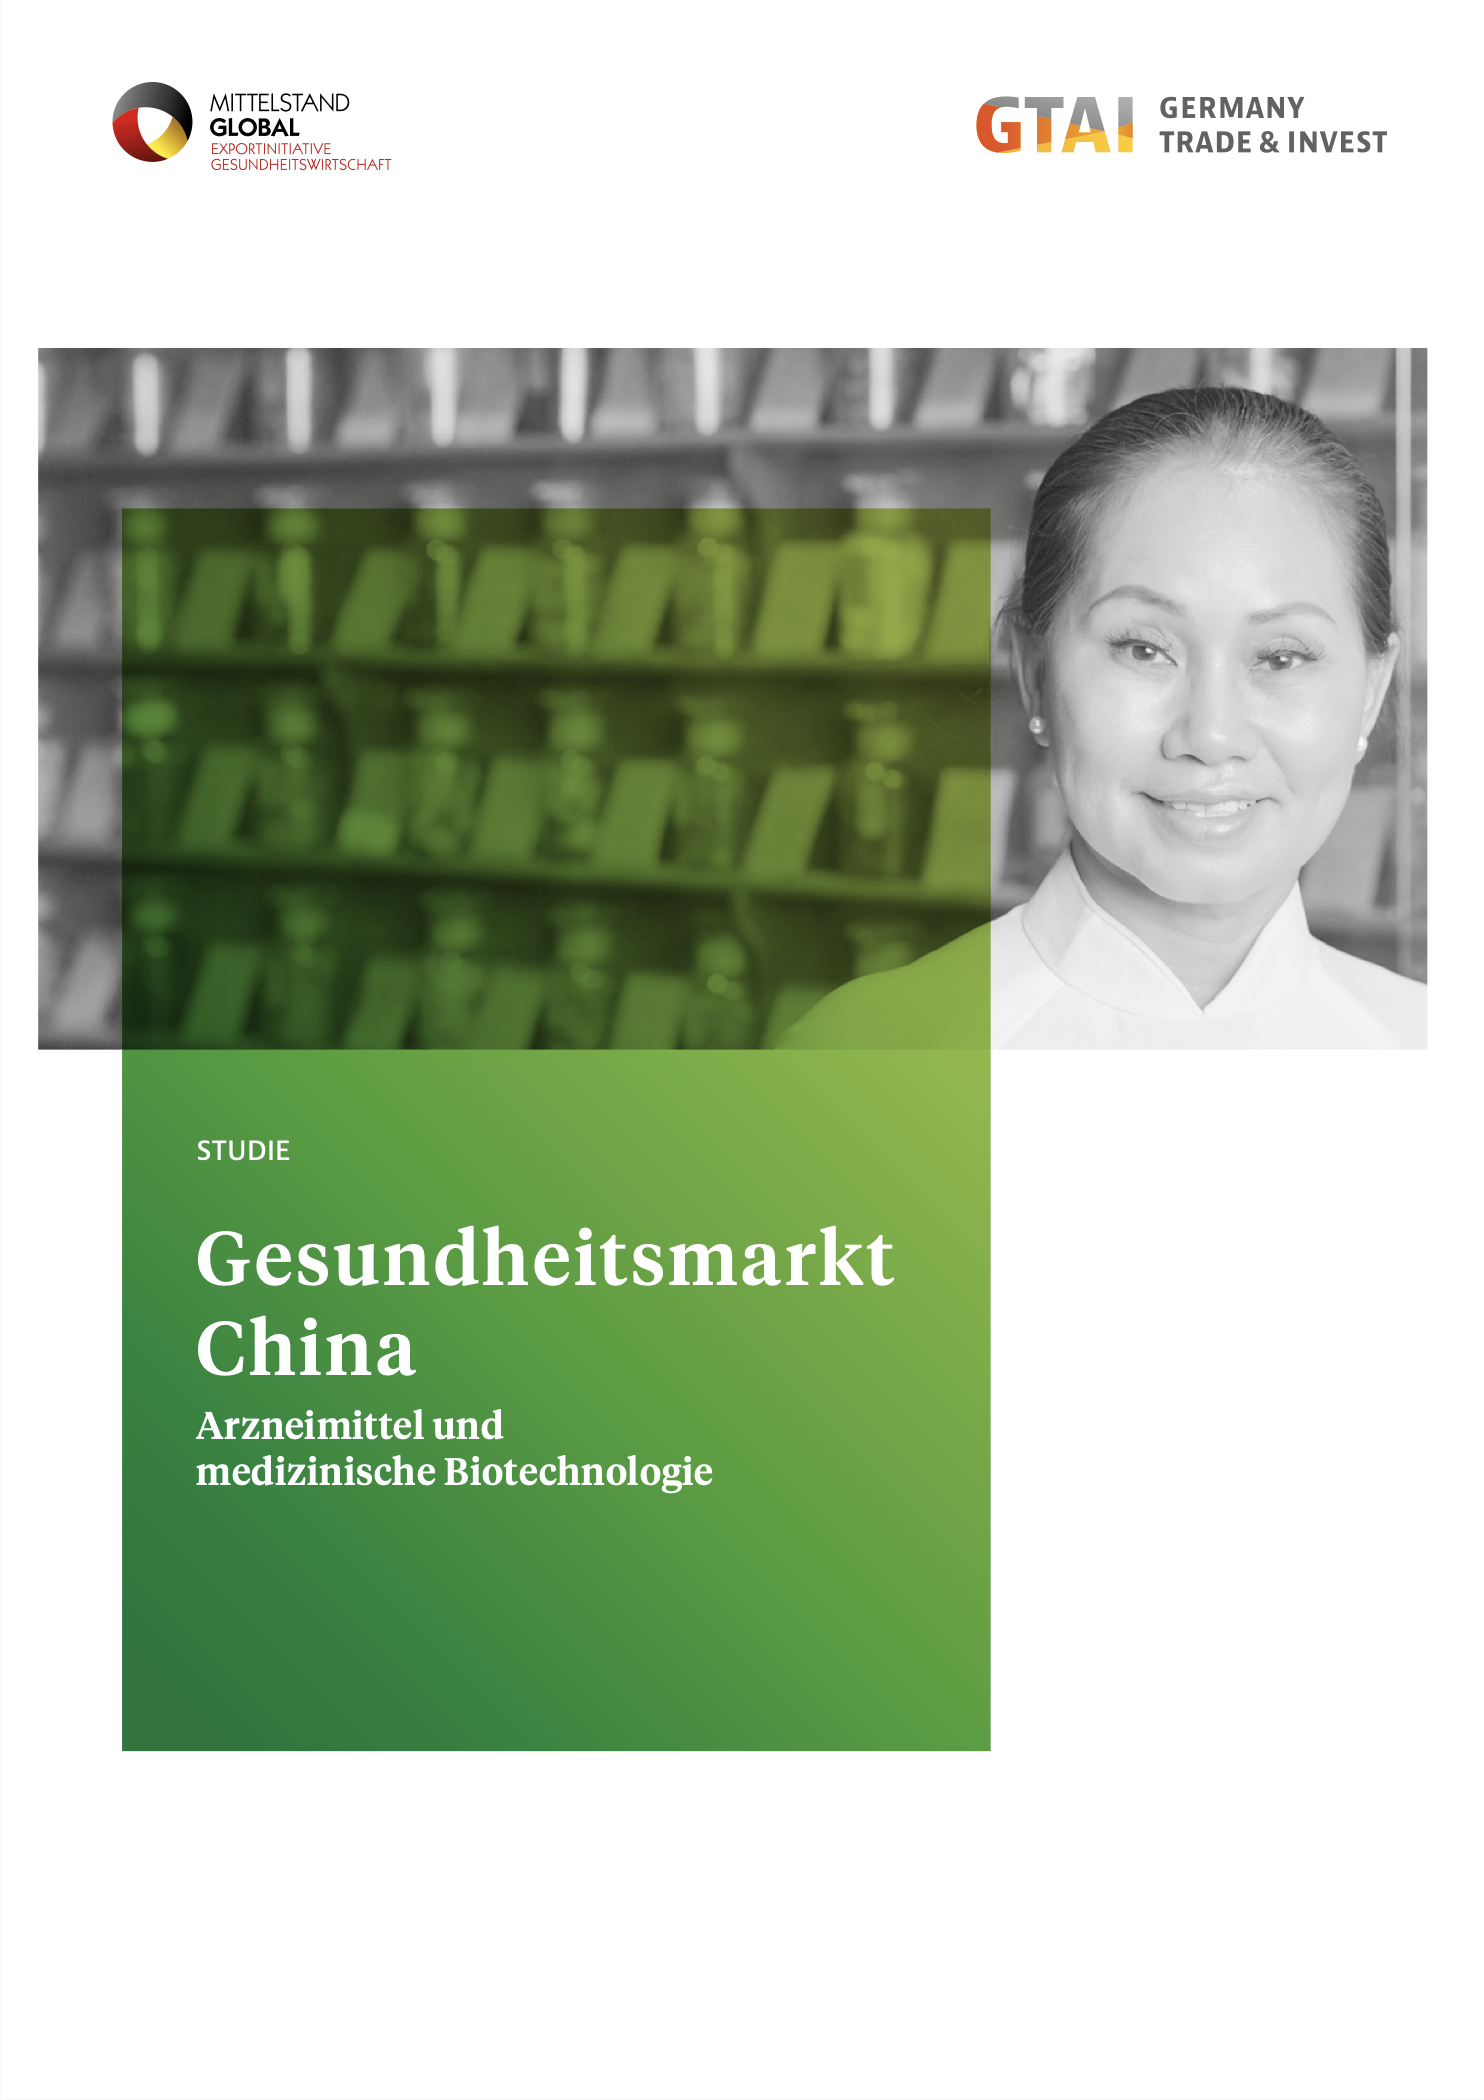 Report in German (2021, 23 pages)